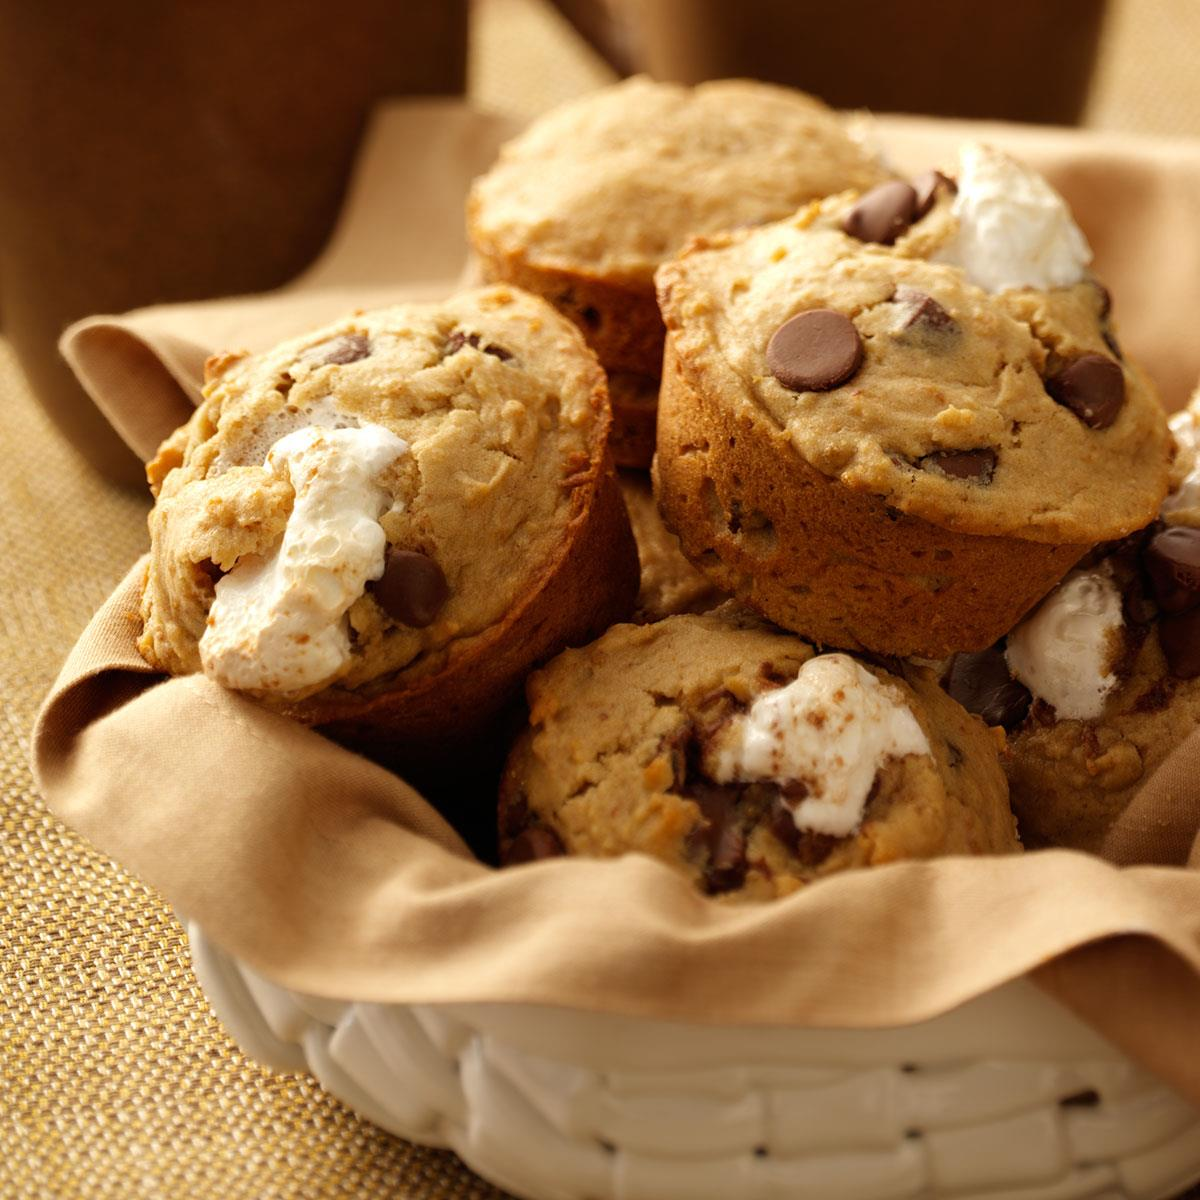 I-Want-S-more-Muffins_exps38327_CFT1191211B05_15_4b_RMS-1.jpg